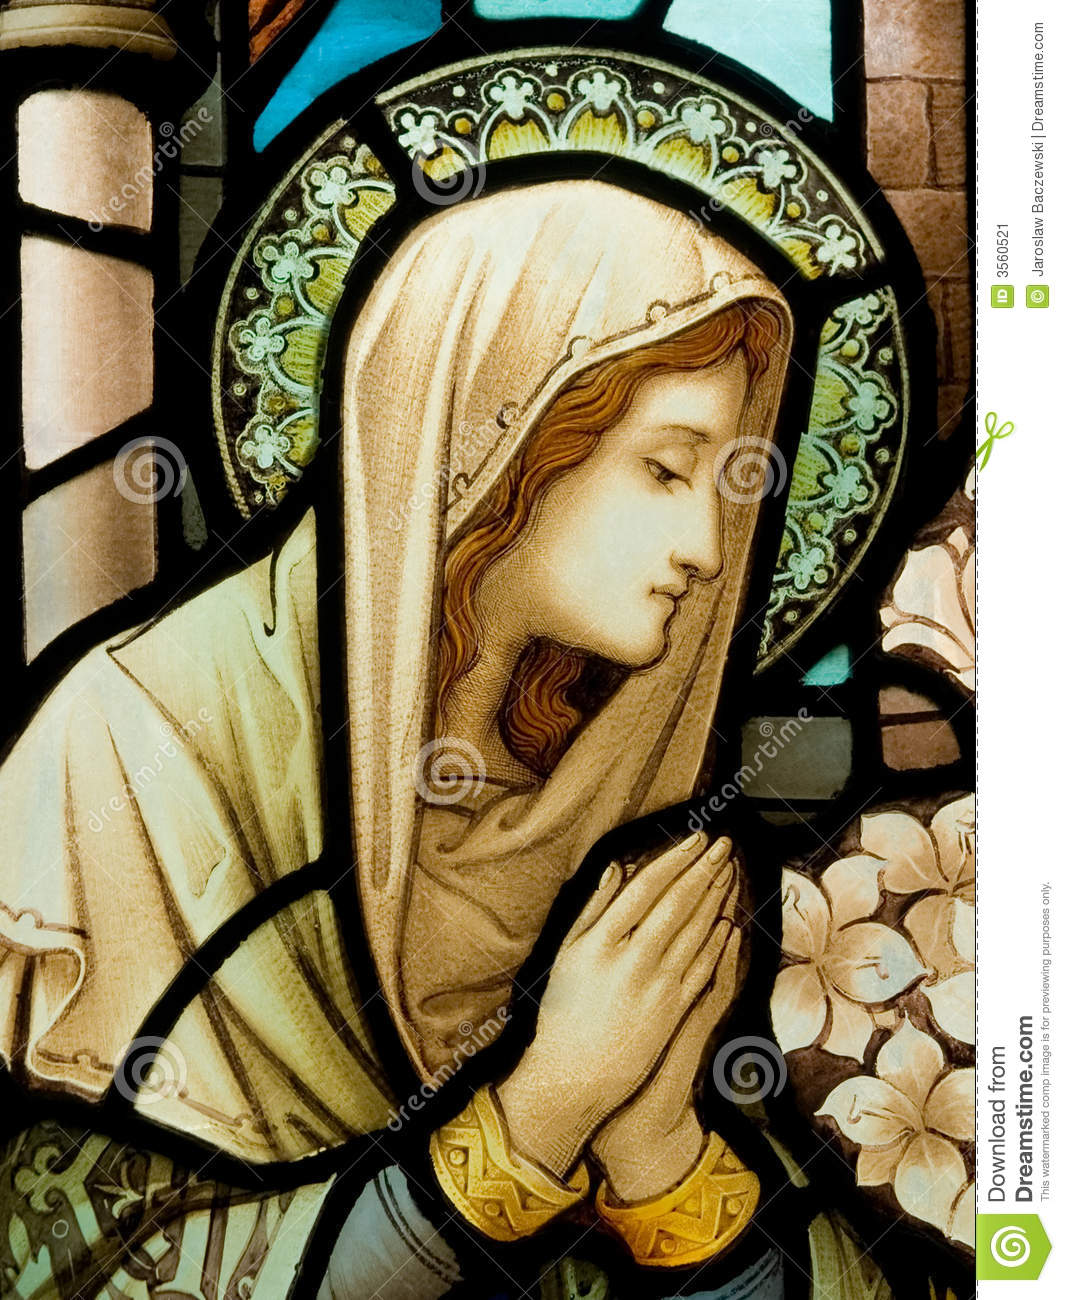 our-lady-3560521[1]